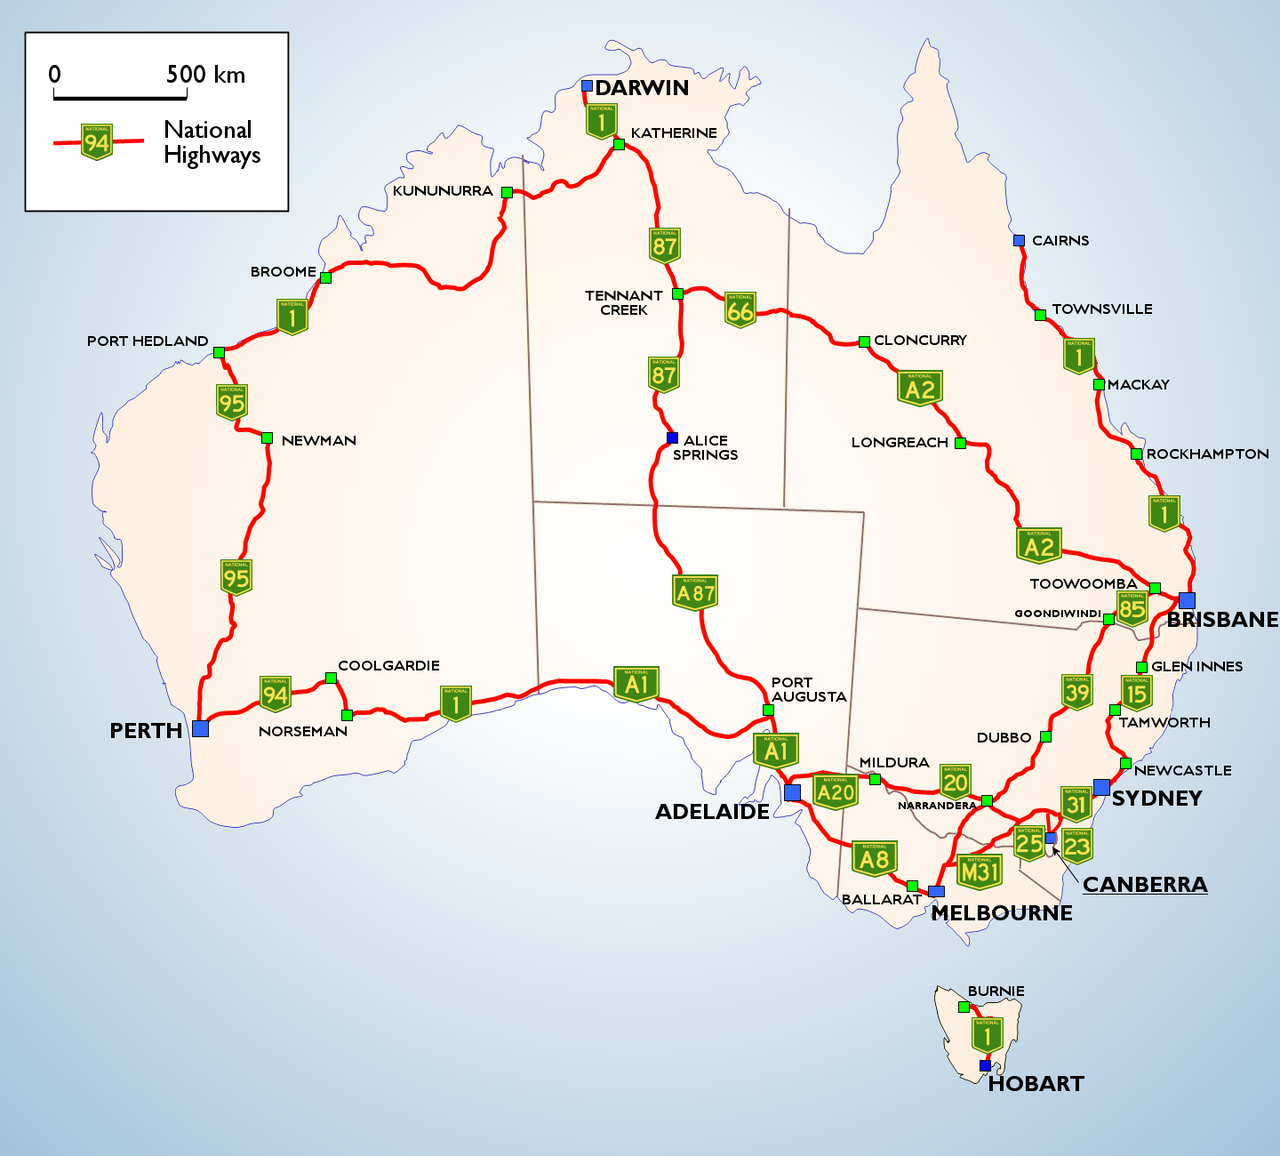 New Zealand Highway Map.National Highway Of Australia Favorite Places Spaces Australia